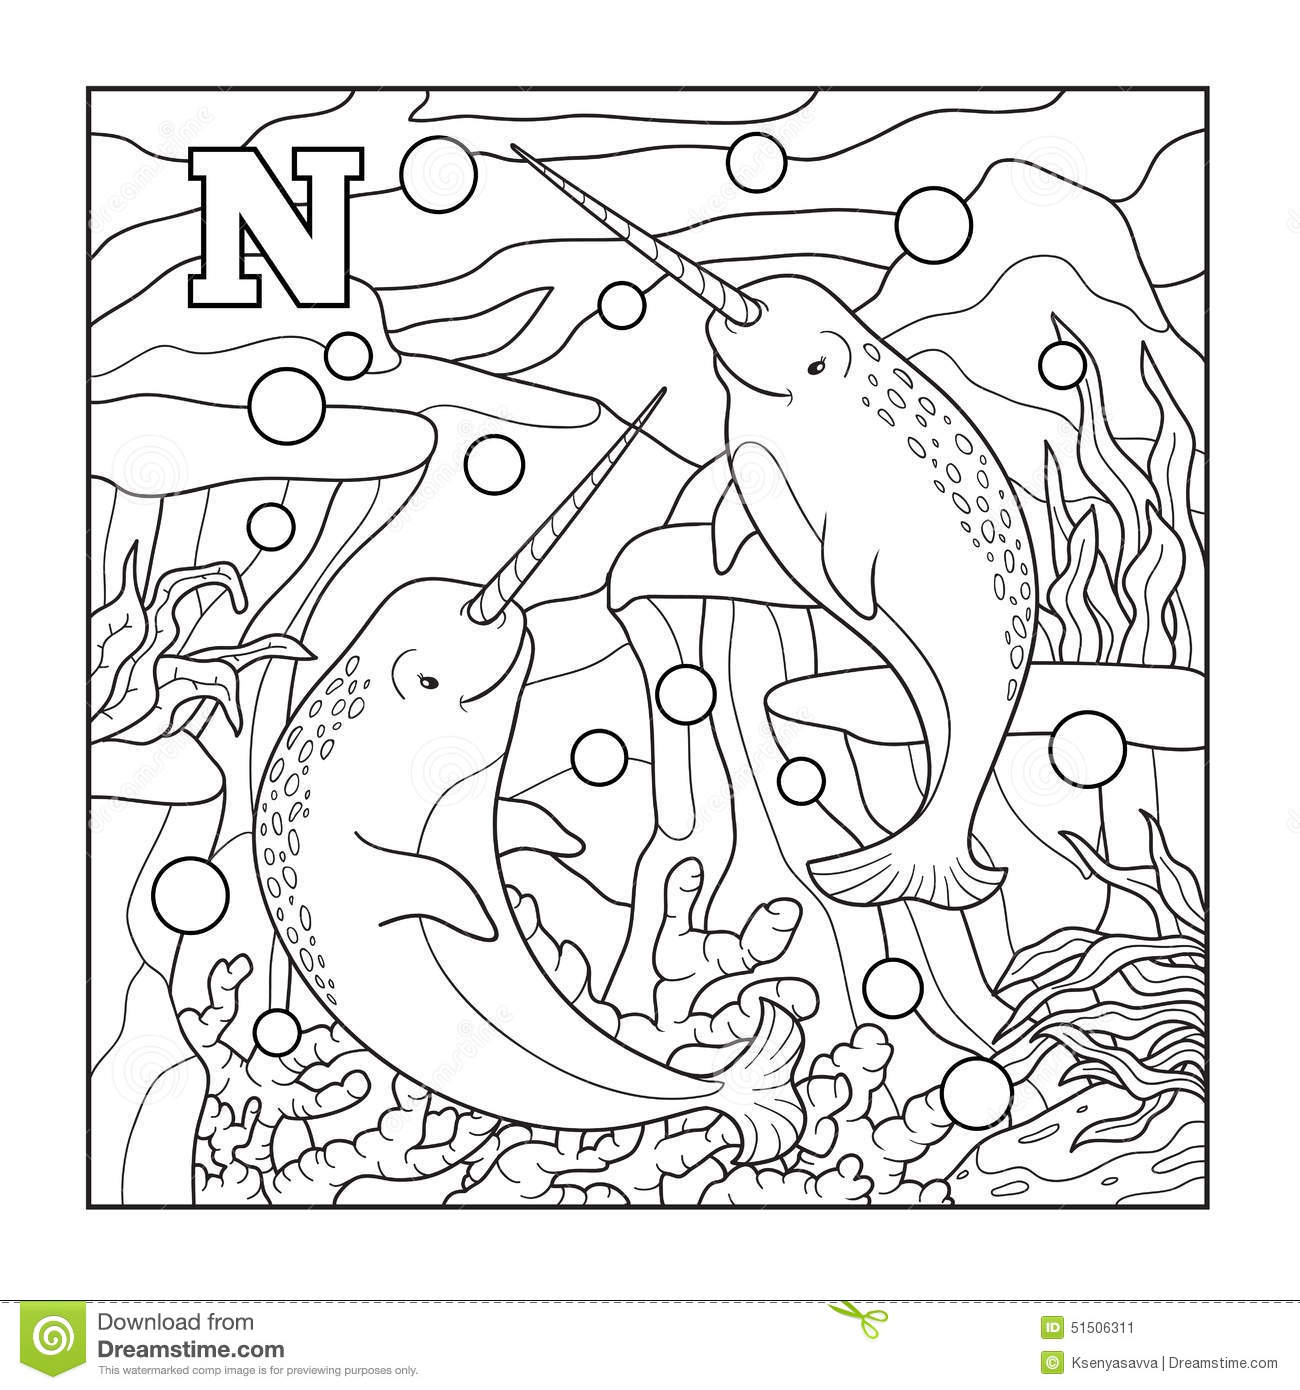 loom coloring pages - photo#6